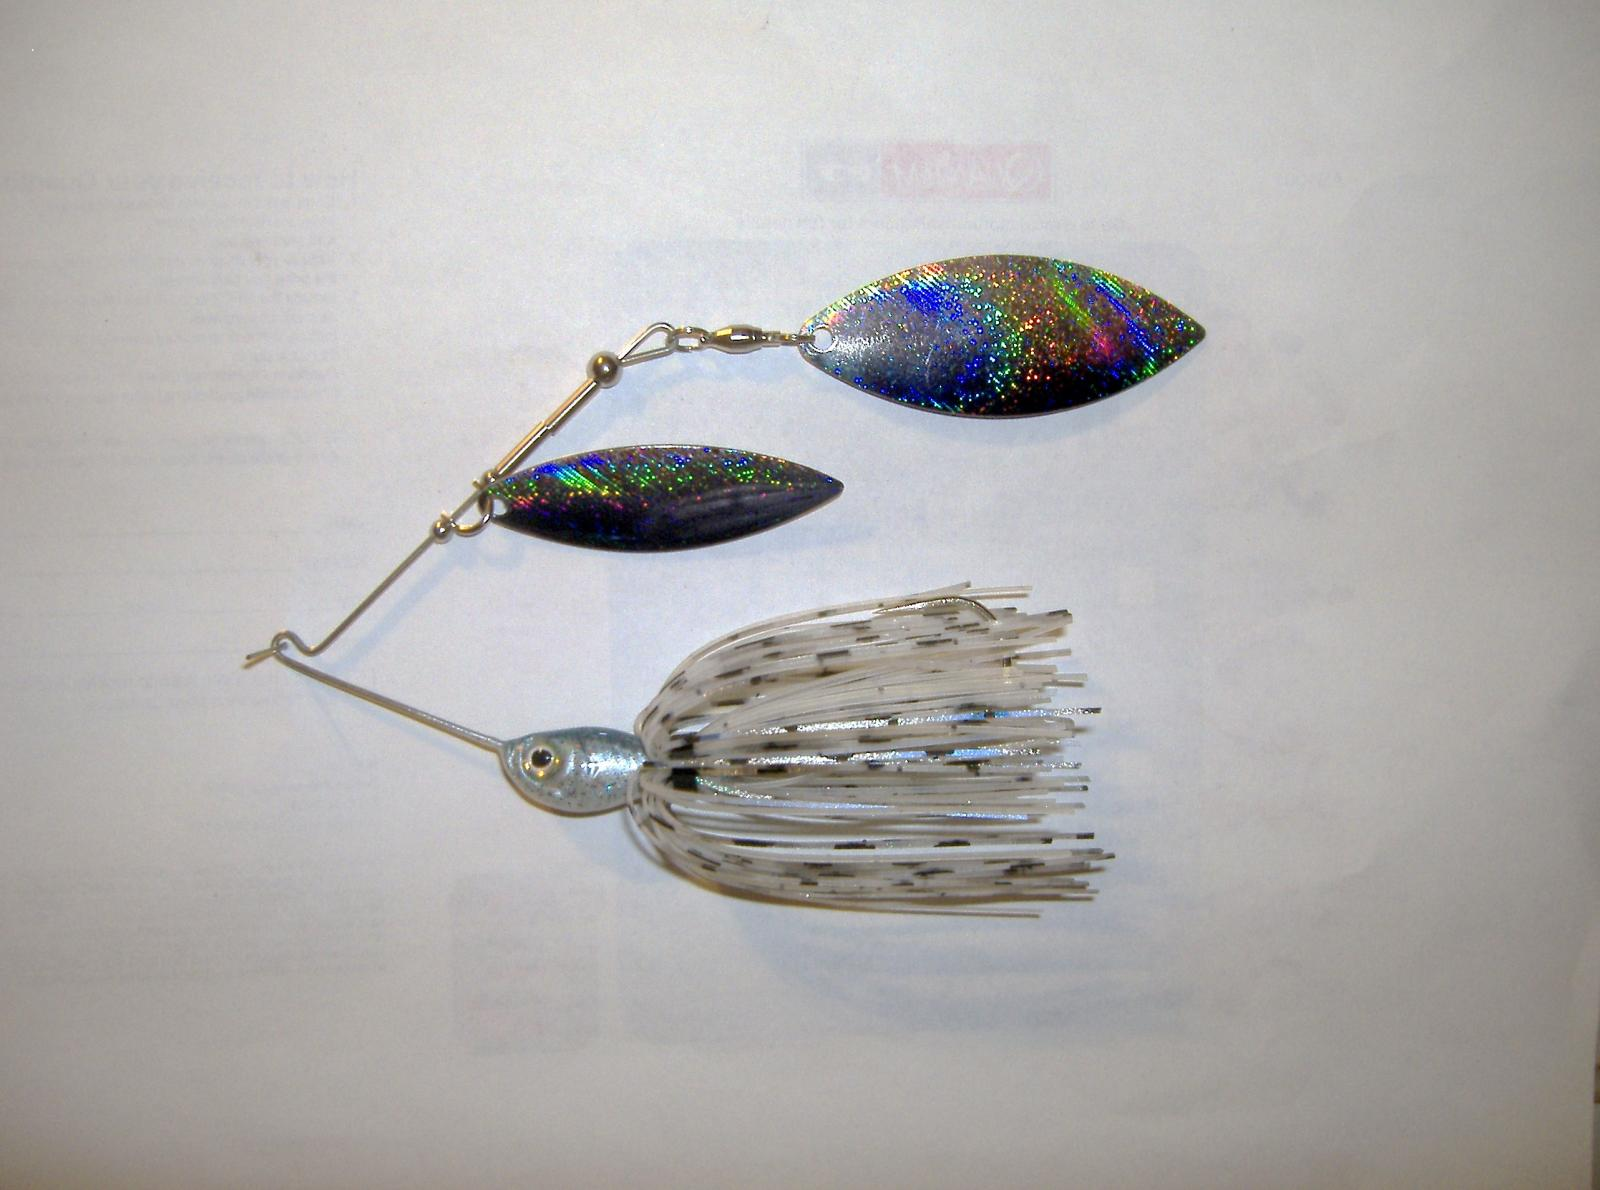 3/8oz Ghost Blue Shad spinnerbait